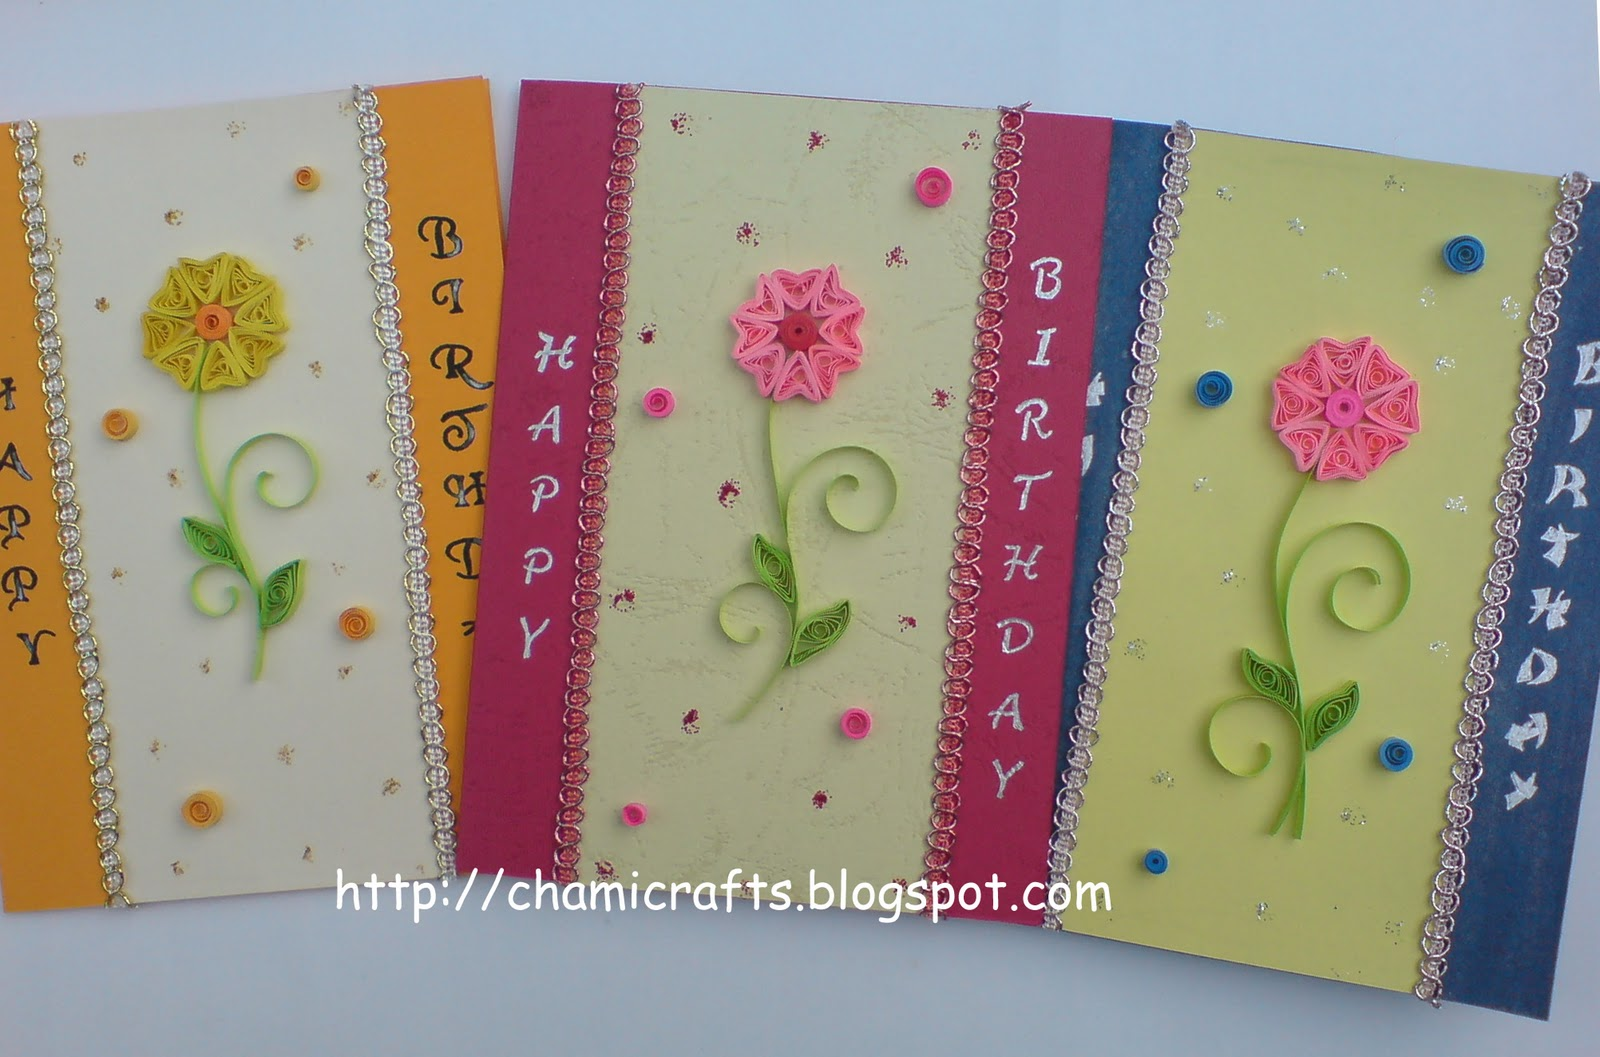 Mengchun how to make a greeting card how to make a greeting card kristyandbryce Gallery